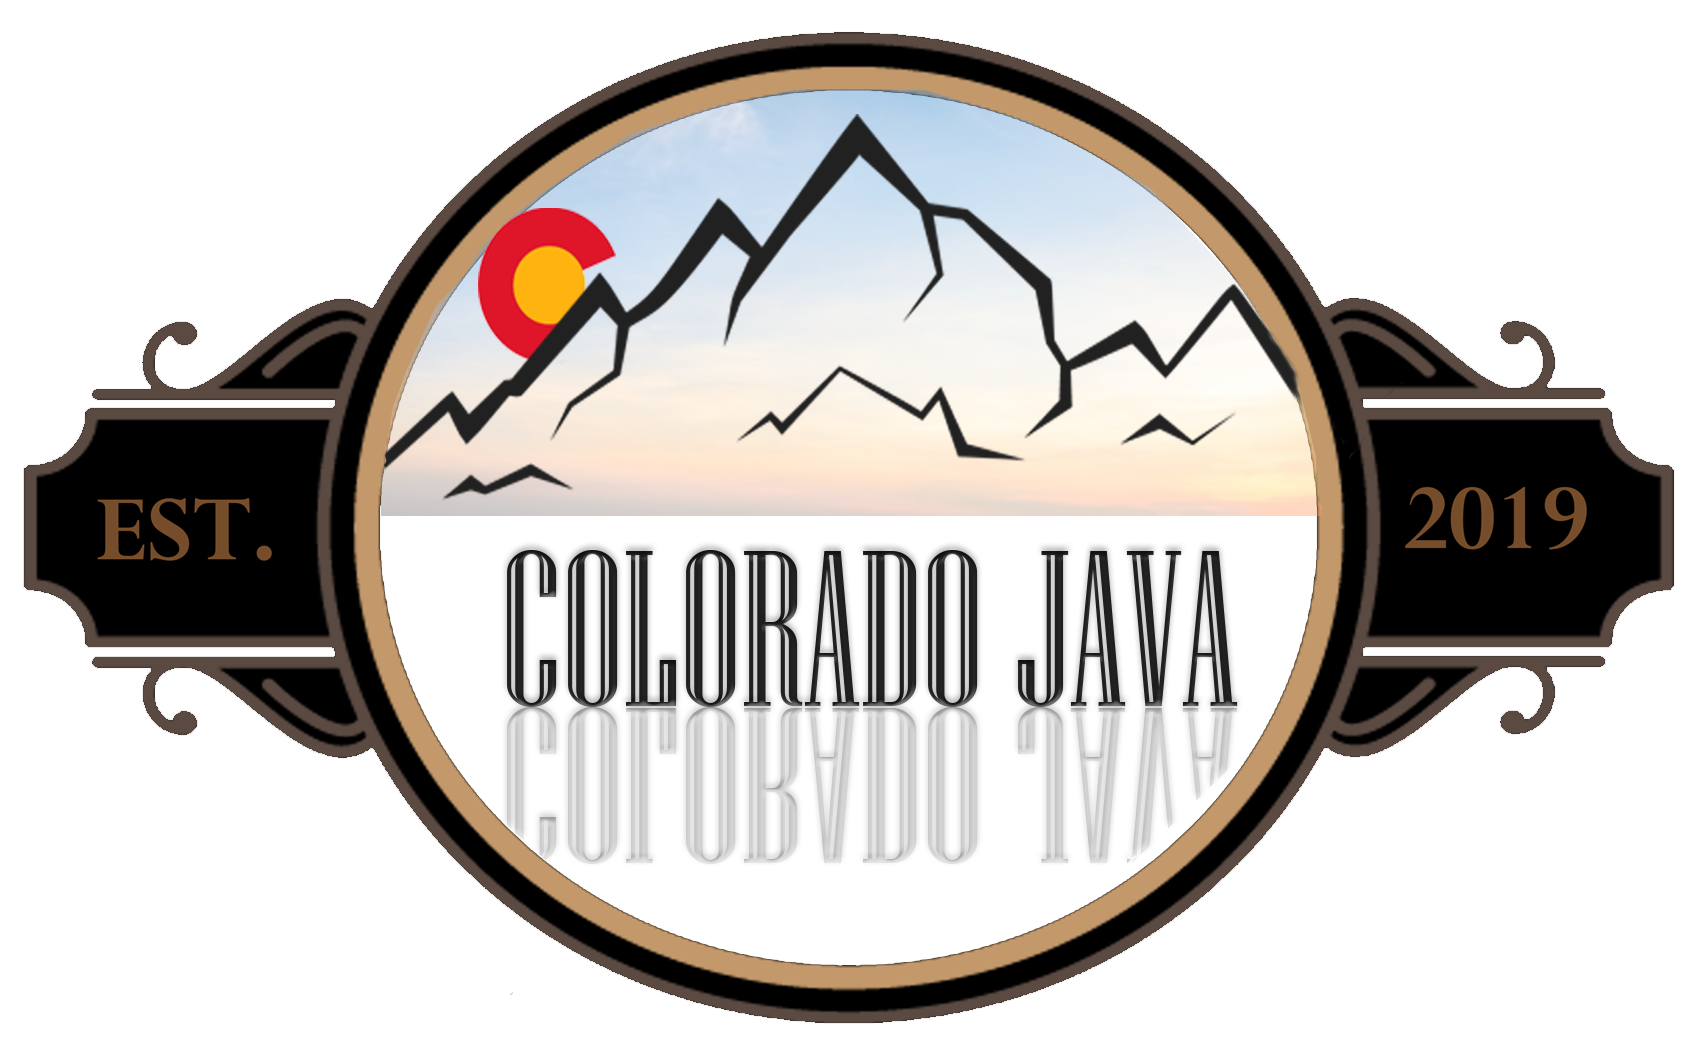 Colorado Java